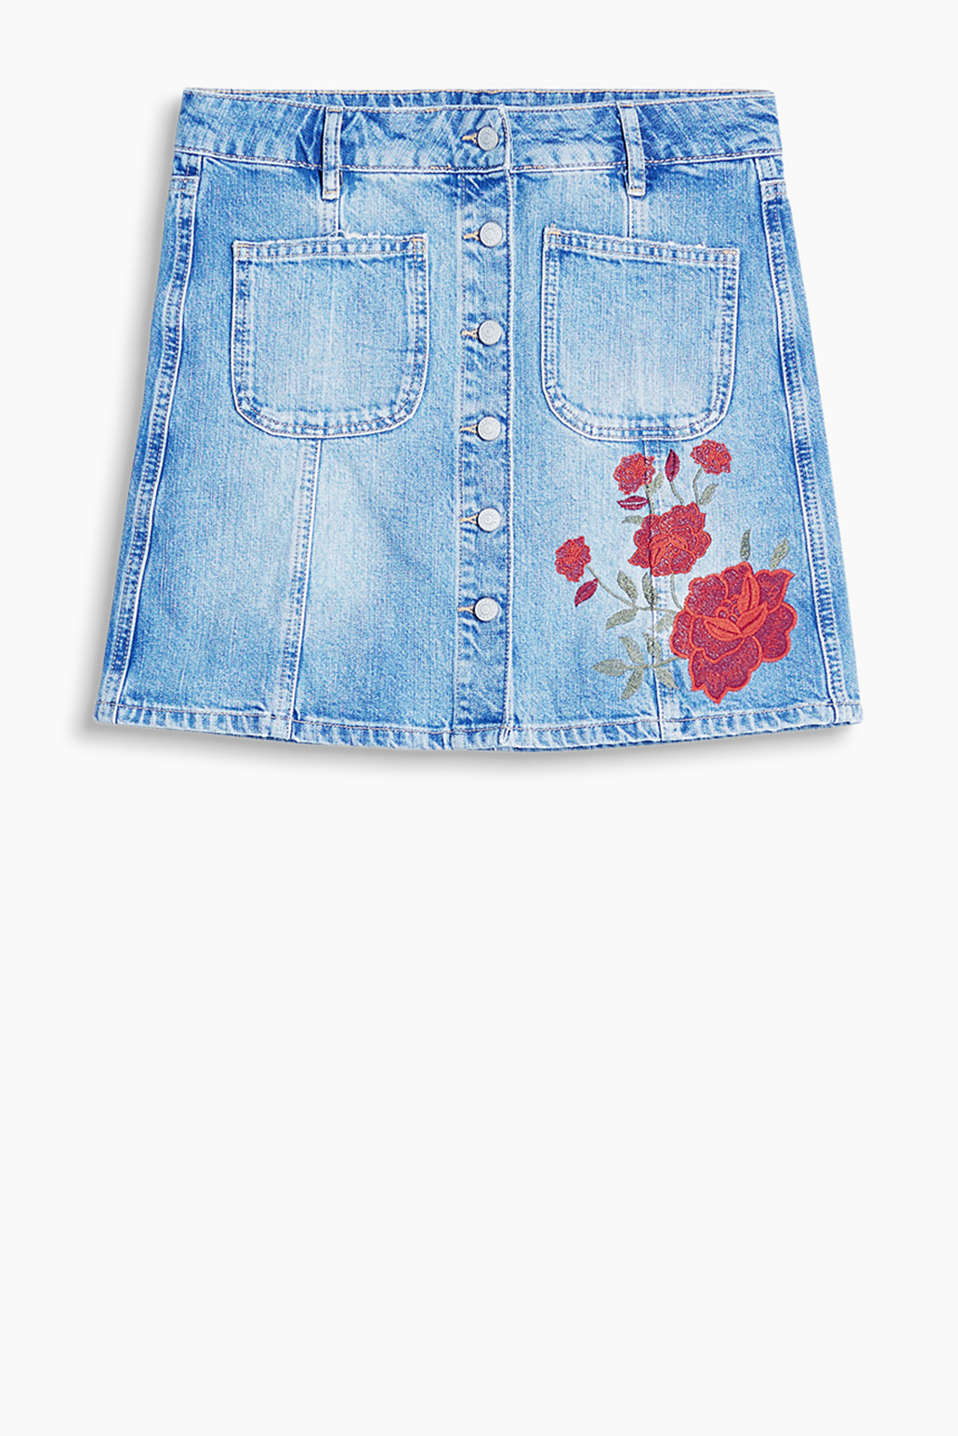 Cotton denim mini skirt with a floral appliqué and central button placket